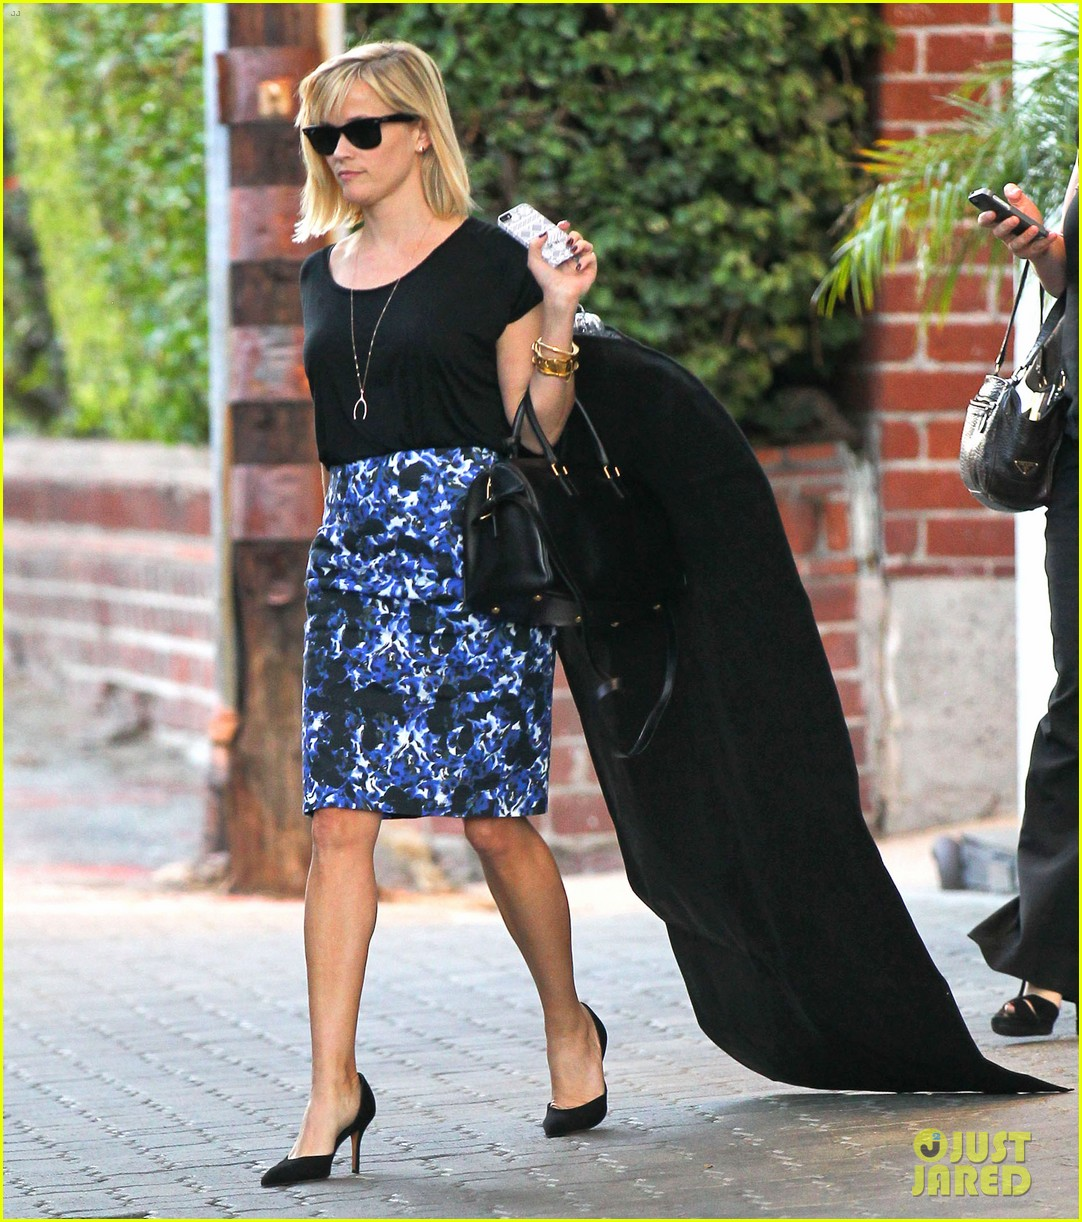 reese witherspoon steps out after the intern news 06